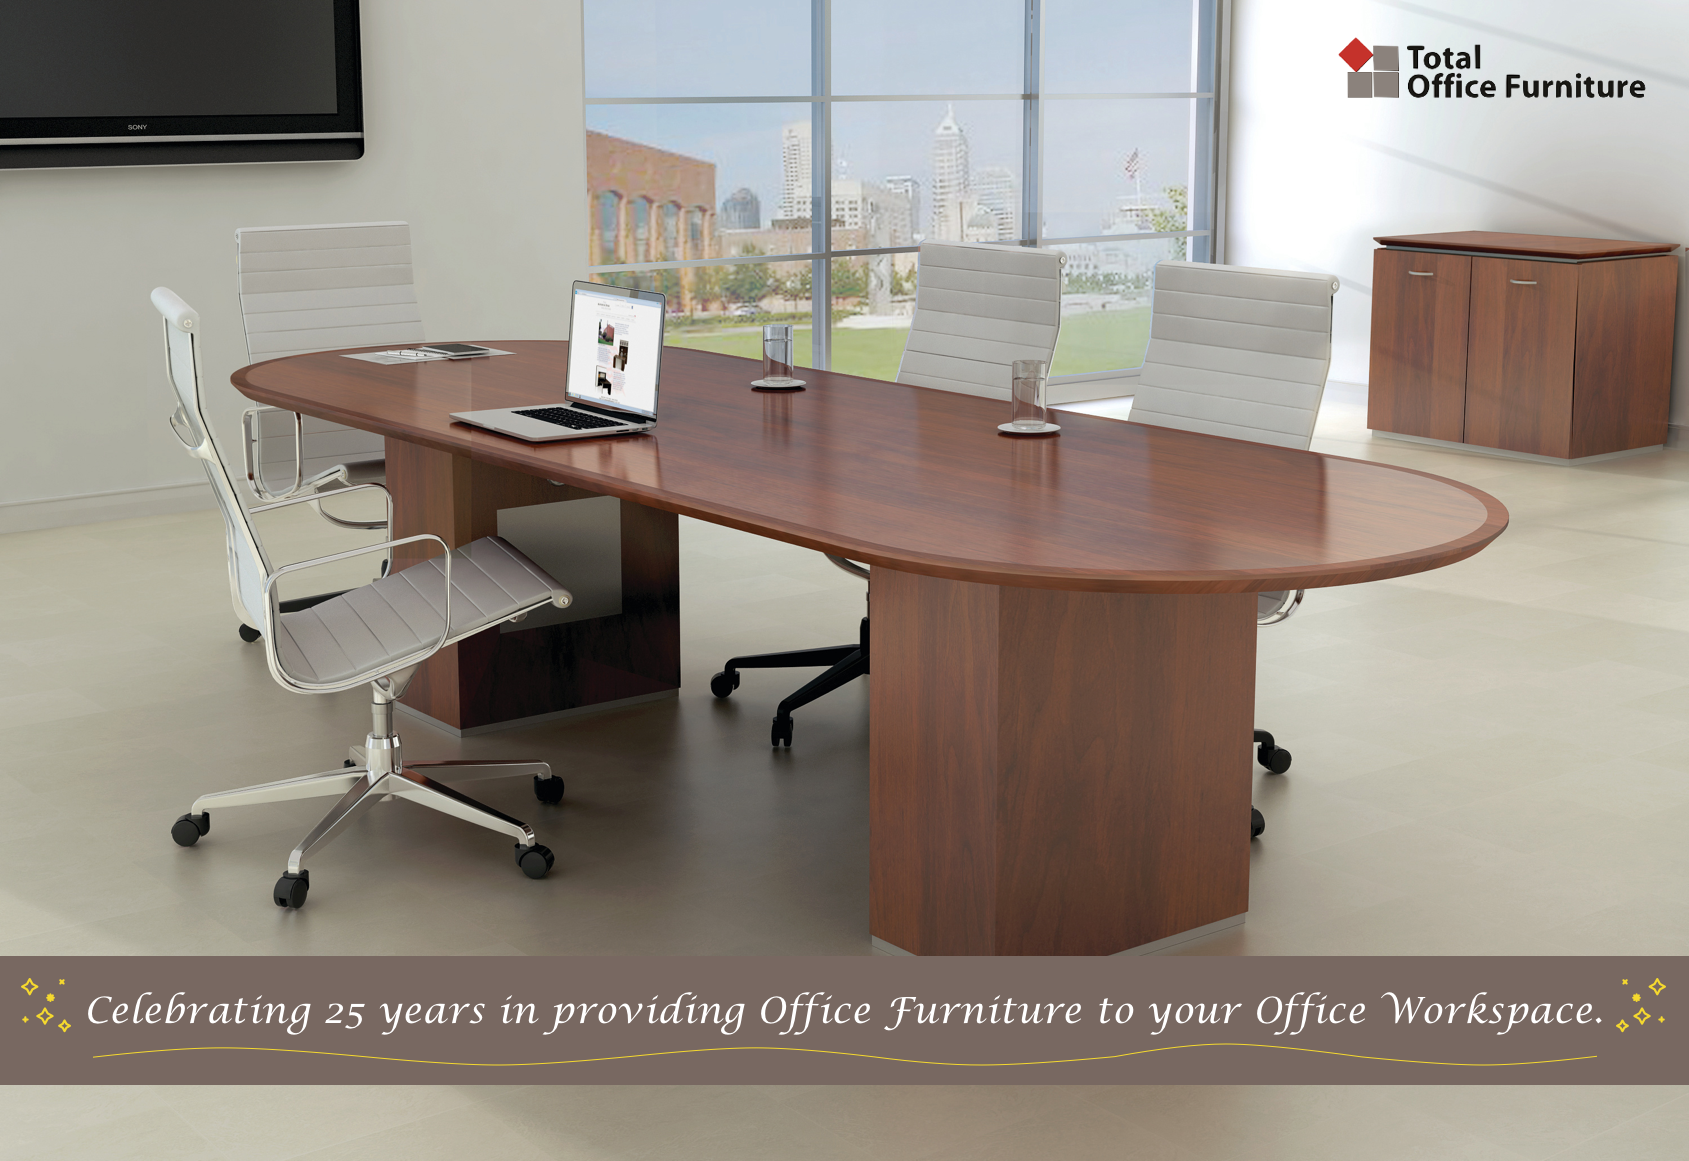 Total Office Furniture Celebrates Over 25 Years in providing you with the quality service and quality Office Furniture